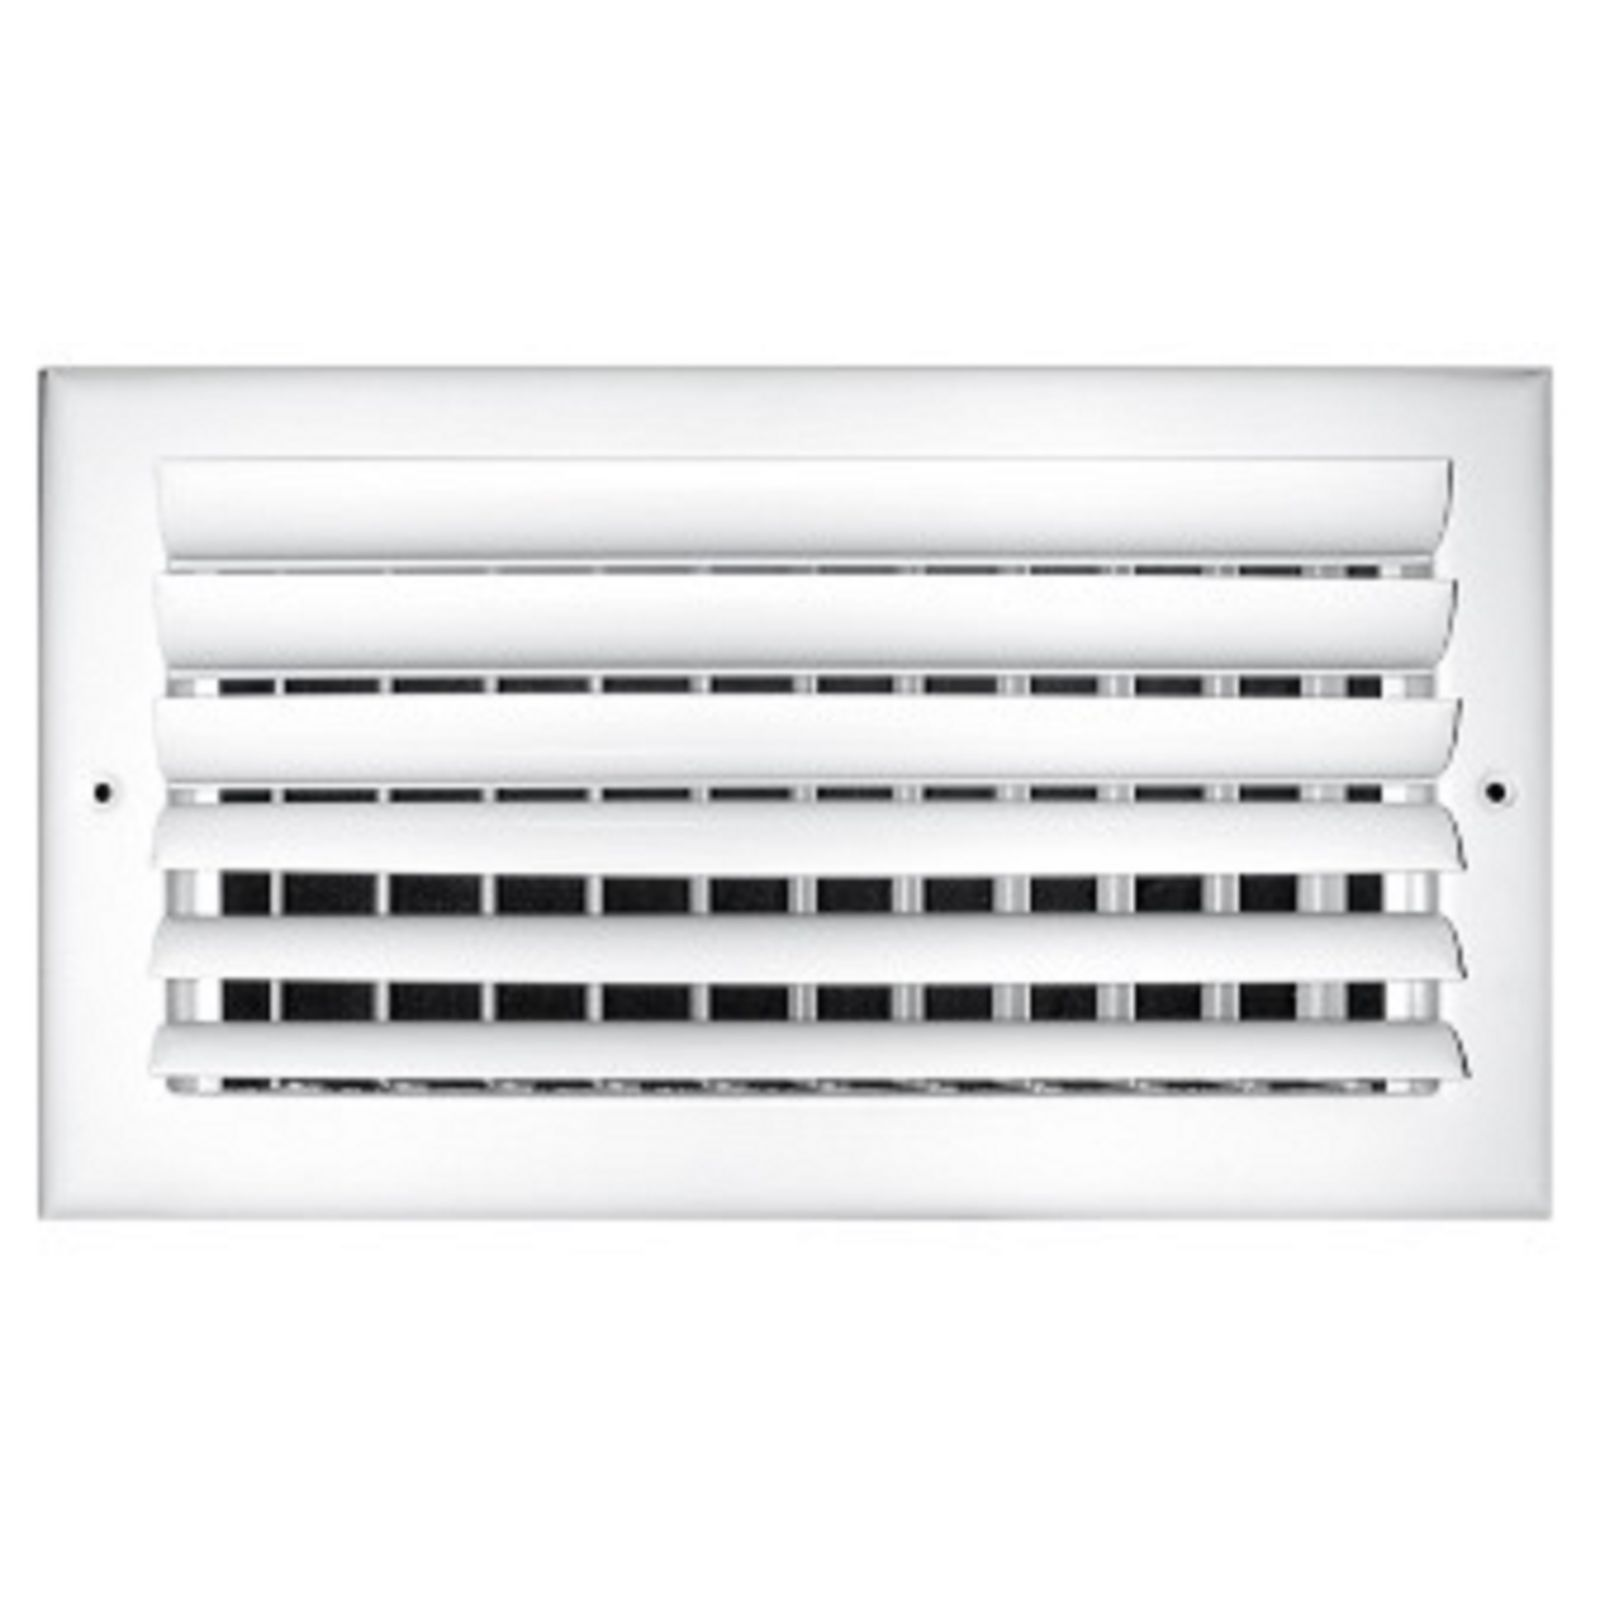 "TRUaire 302M 14X06 - Steel Adjustable Curved Blade Wall/Ceiling Register With Multi Shutter Damper, 2-Way, White, 14"" X 06"""